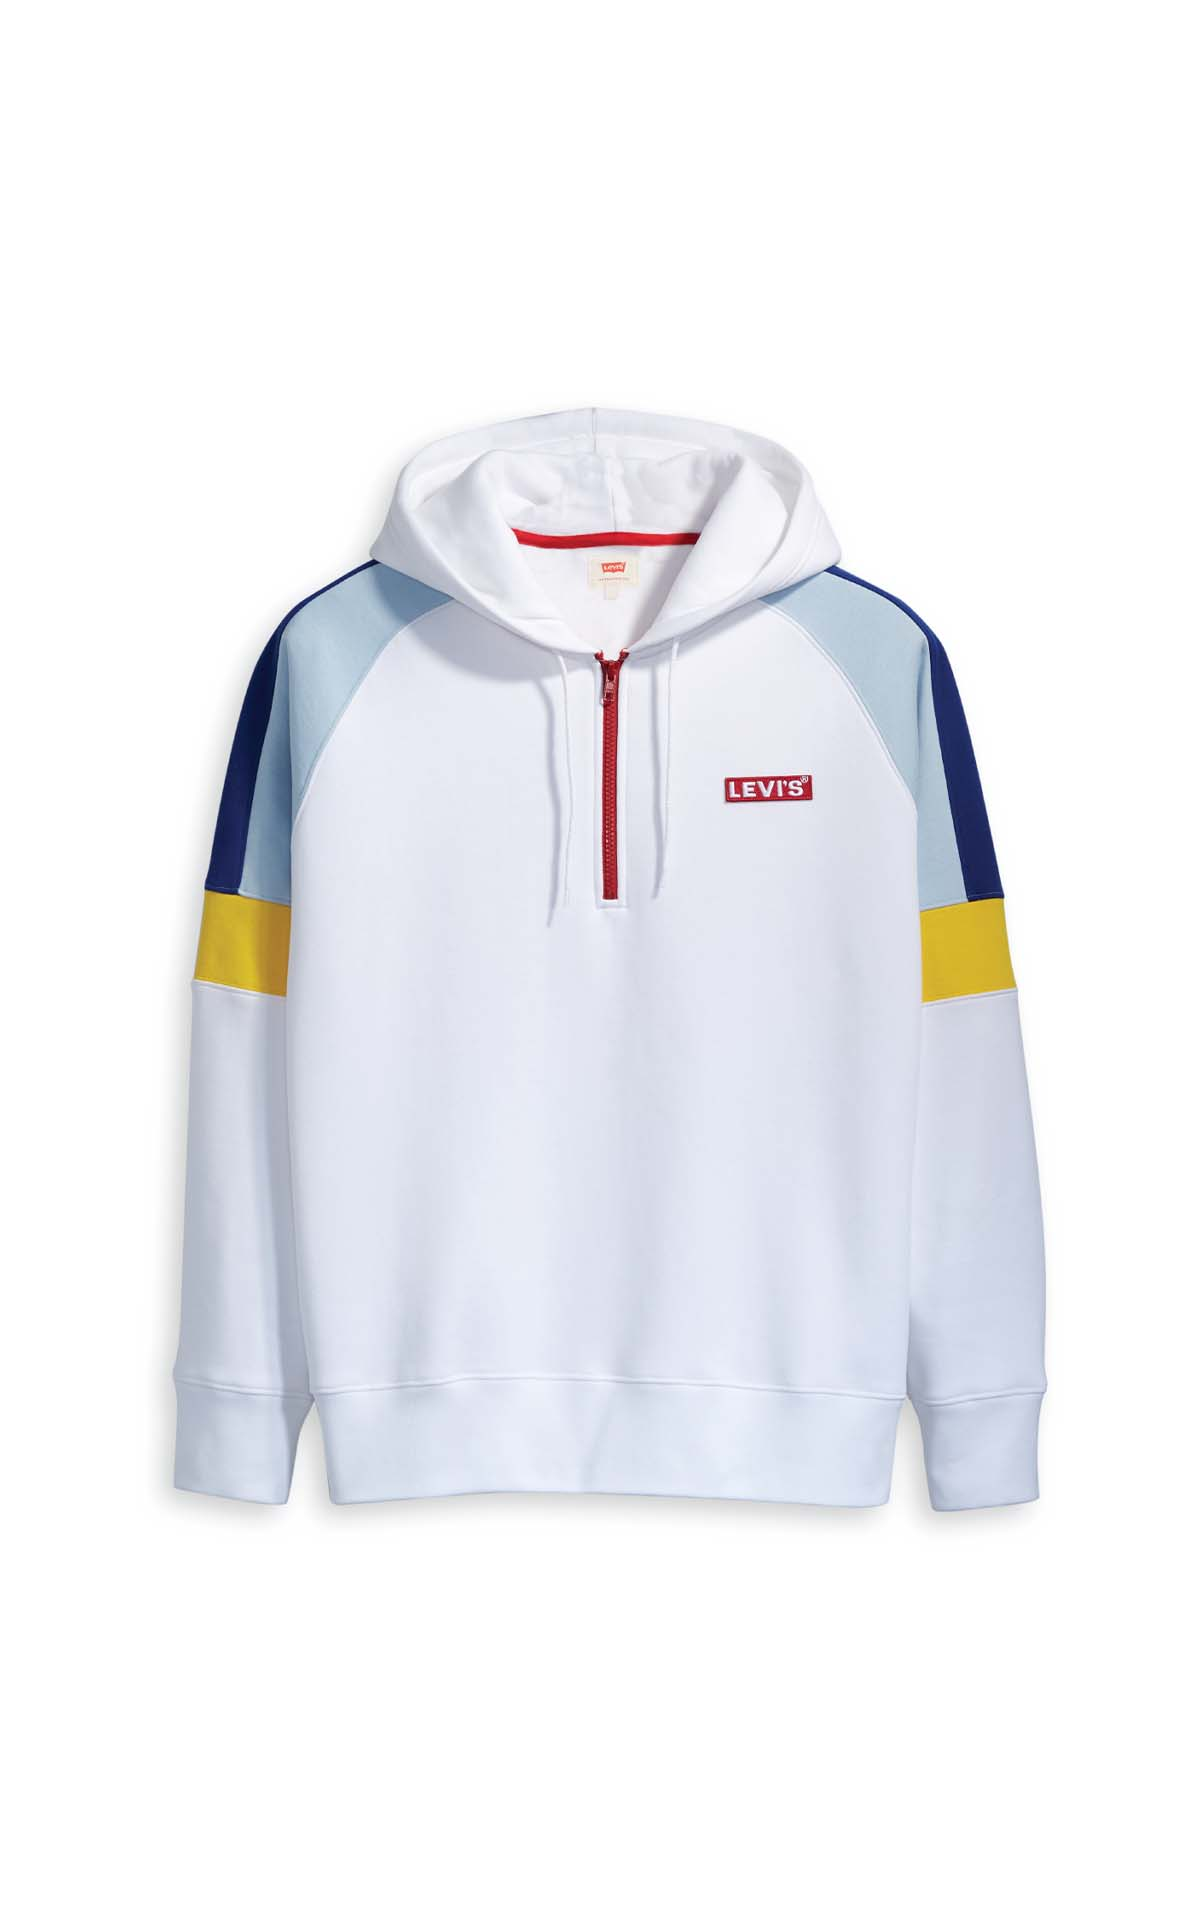 Levi's White Hoodie at The Bicester Village Shopping Collection